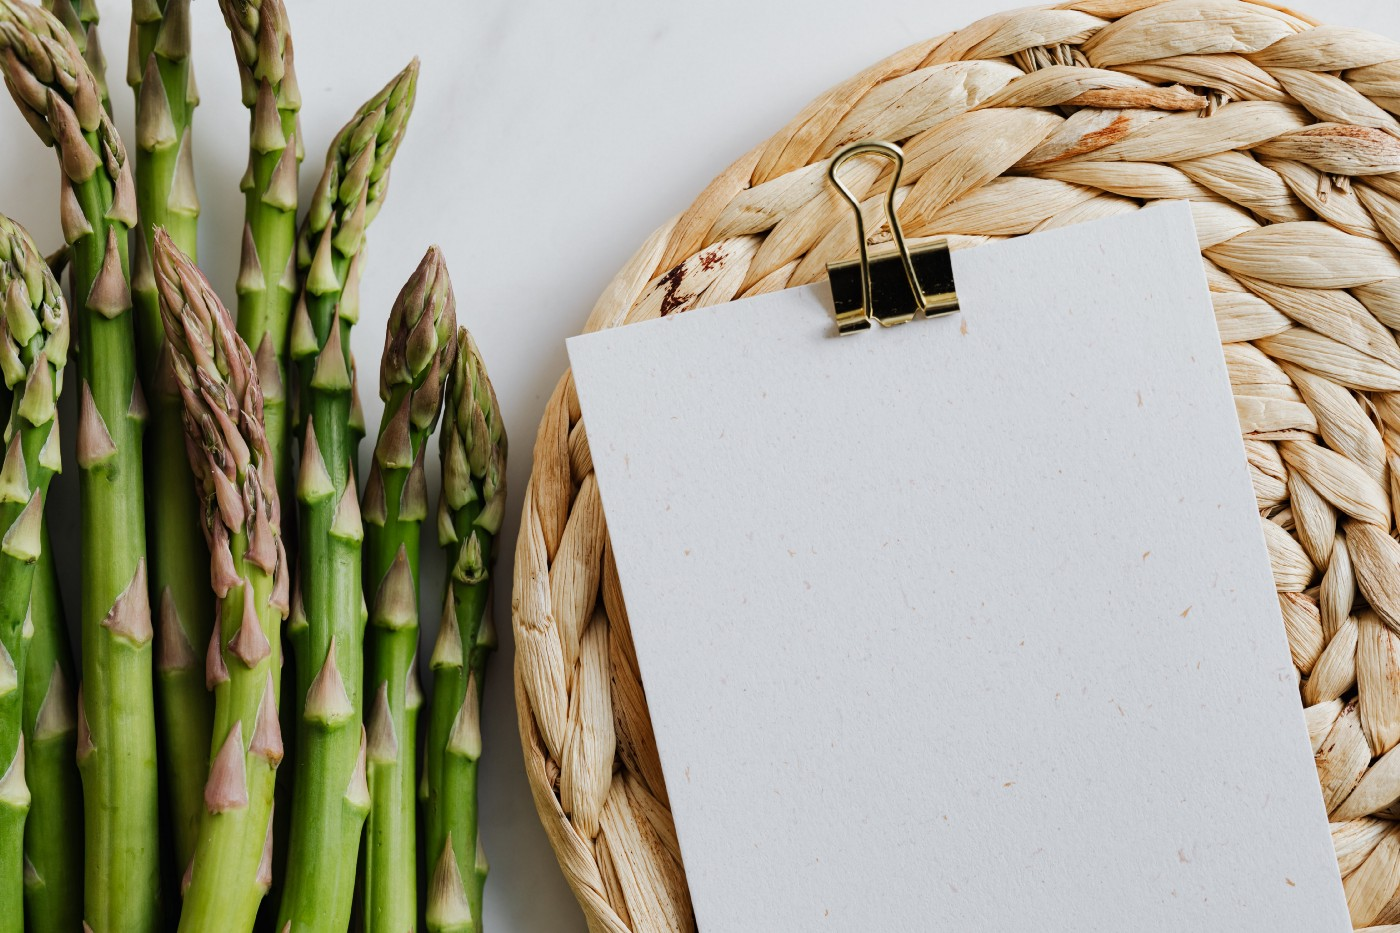 Asparagus on a table lying next to a blank paper and a brown woven mat